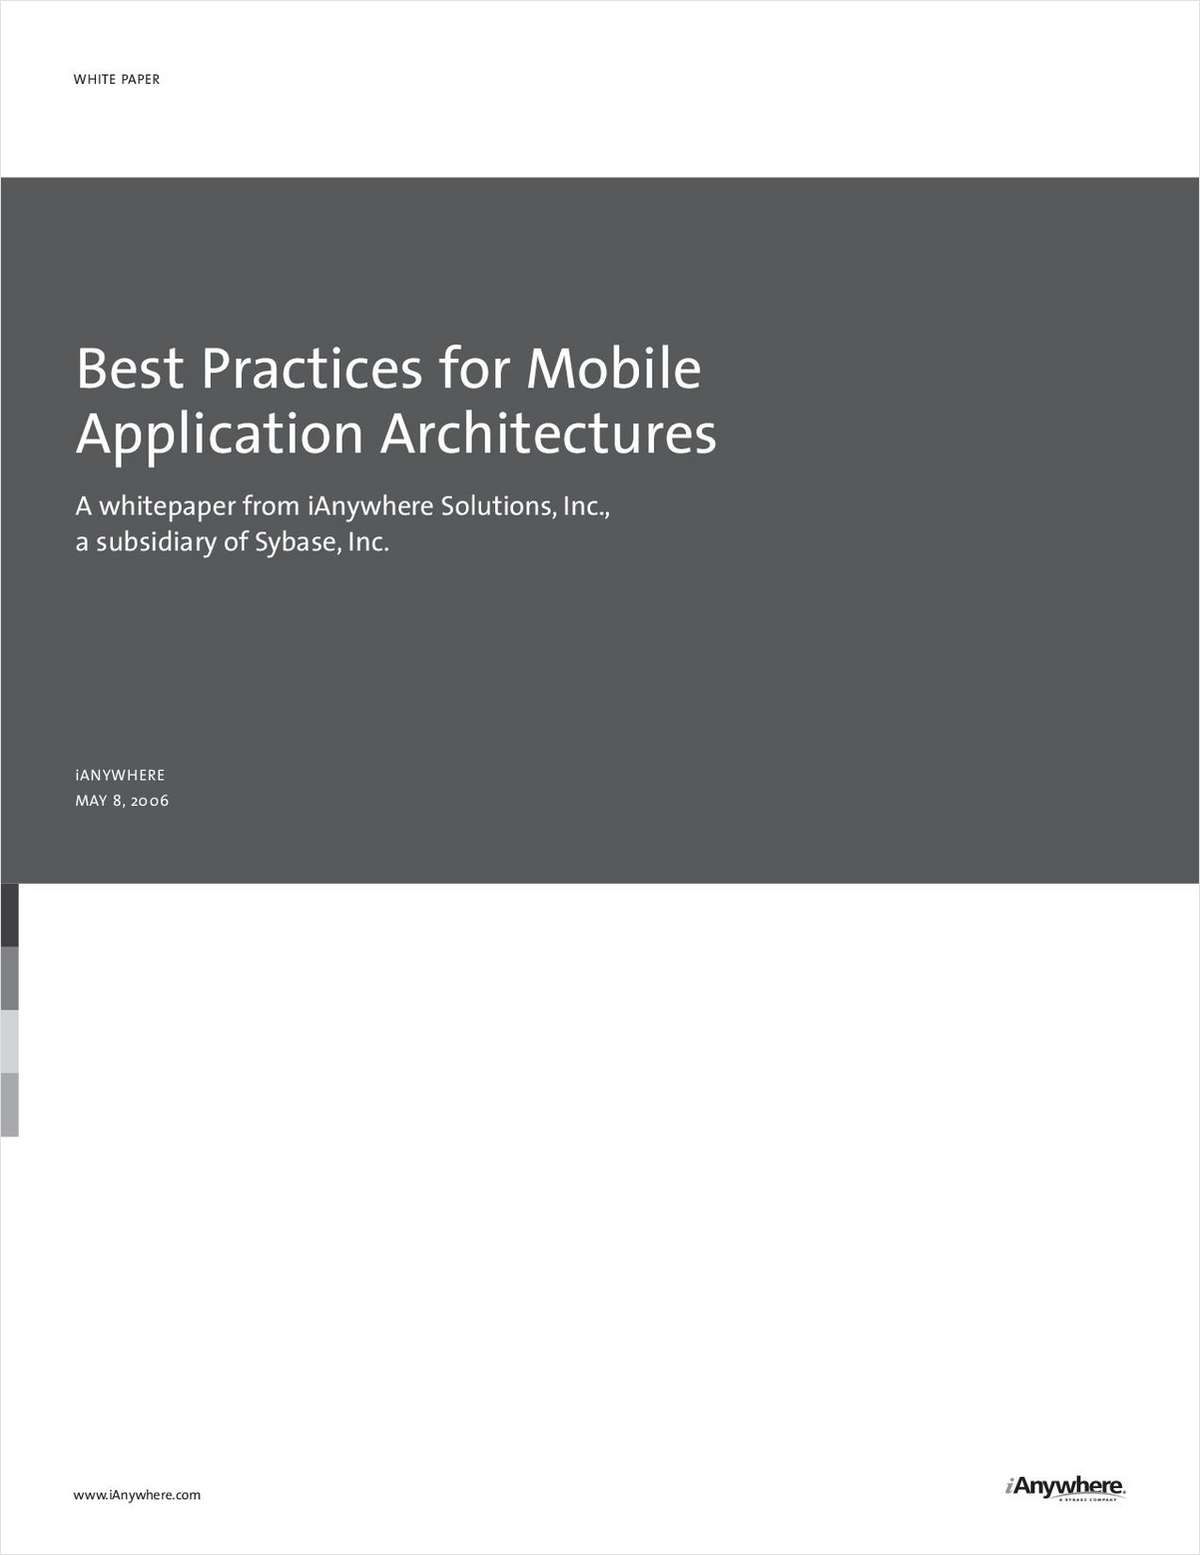 Best Practices for Mobile Application Architectures